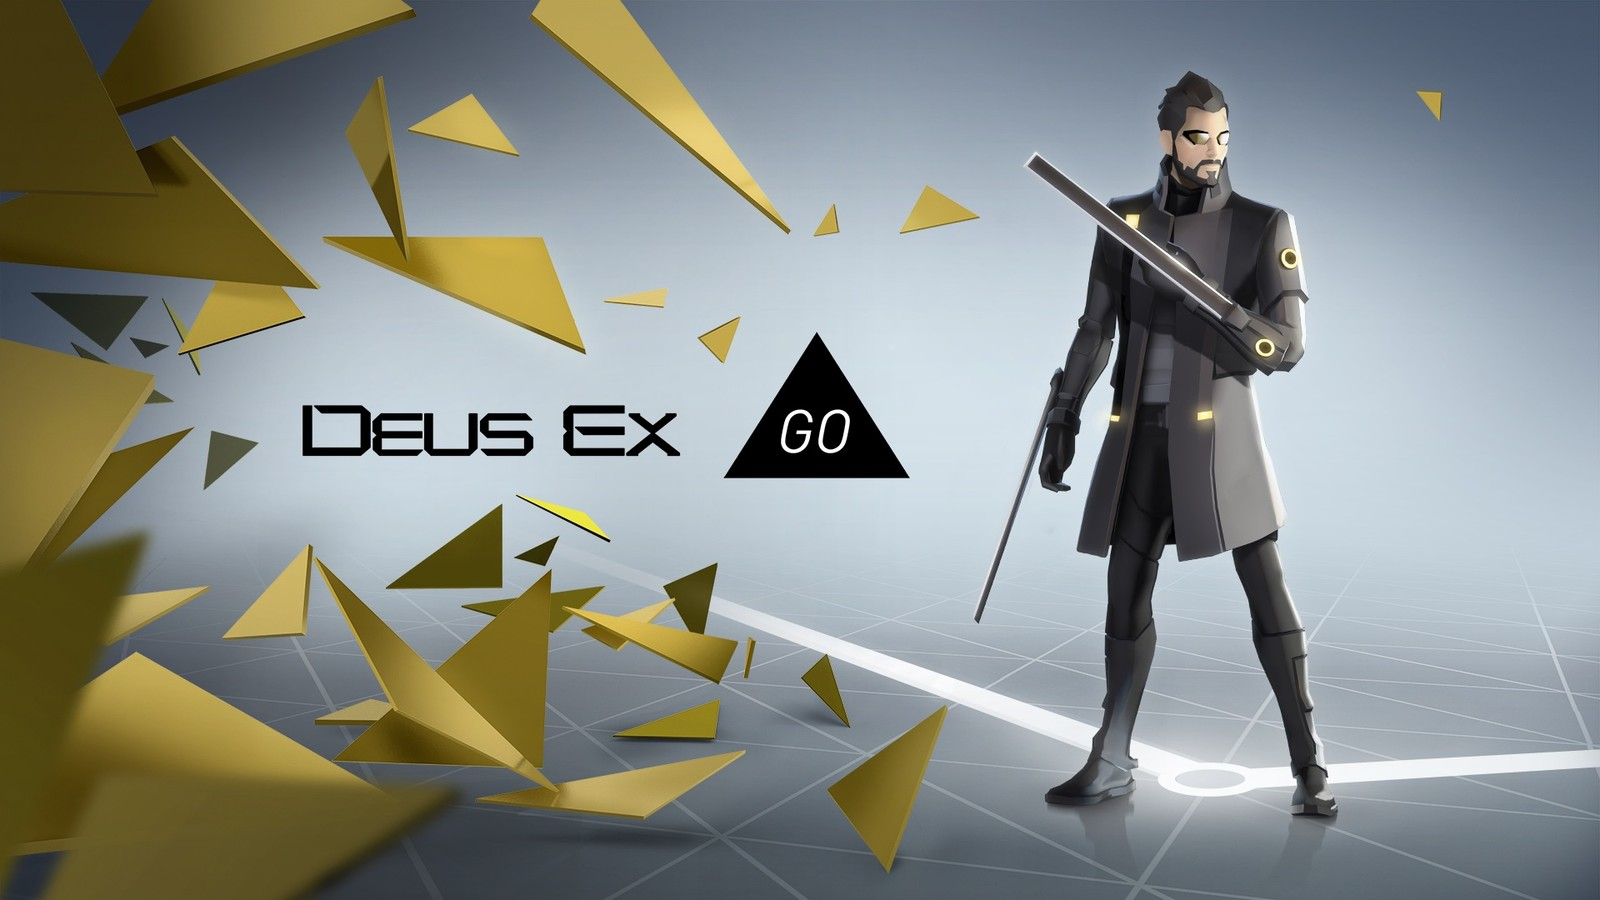 Deus ex: the fall for iphone/ipad version 1. 0. 5 | free download.